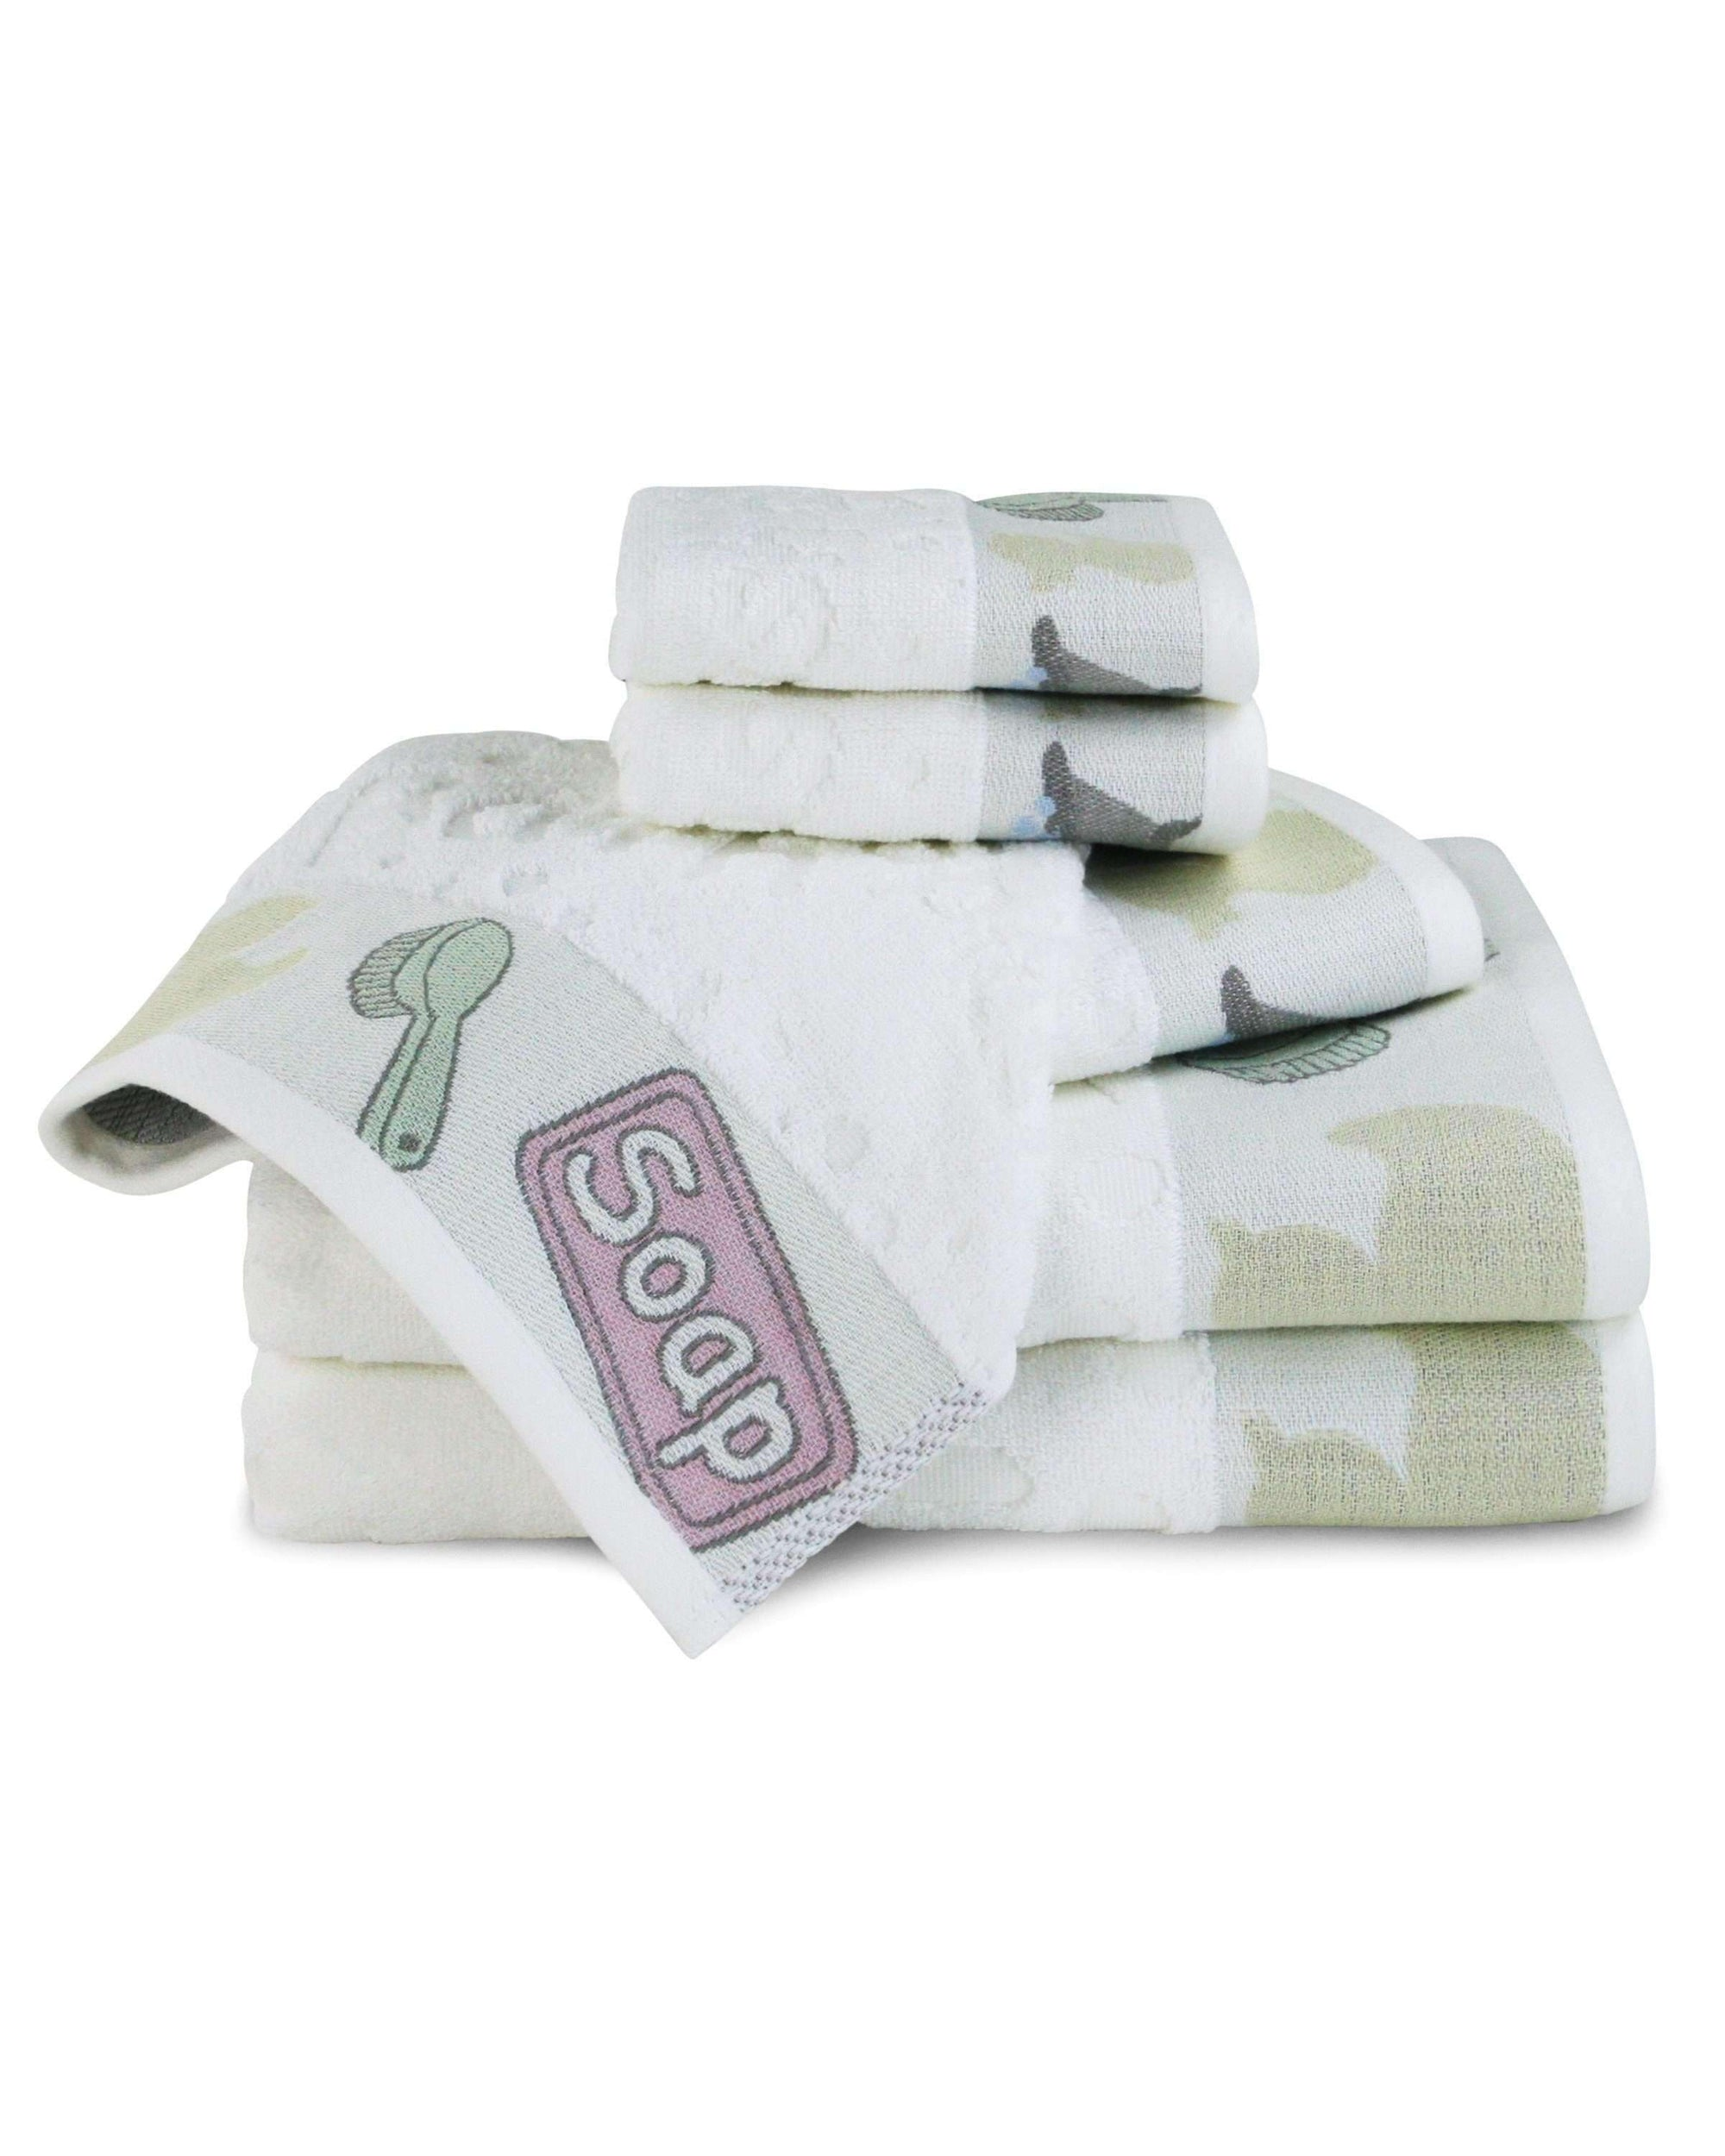 Bambini Bathtime 100% Egyptian Cotton Towels